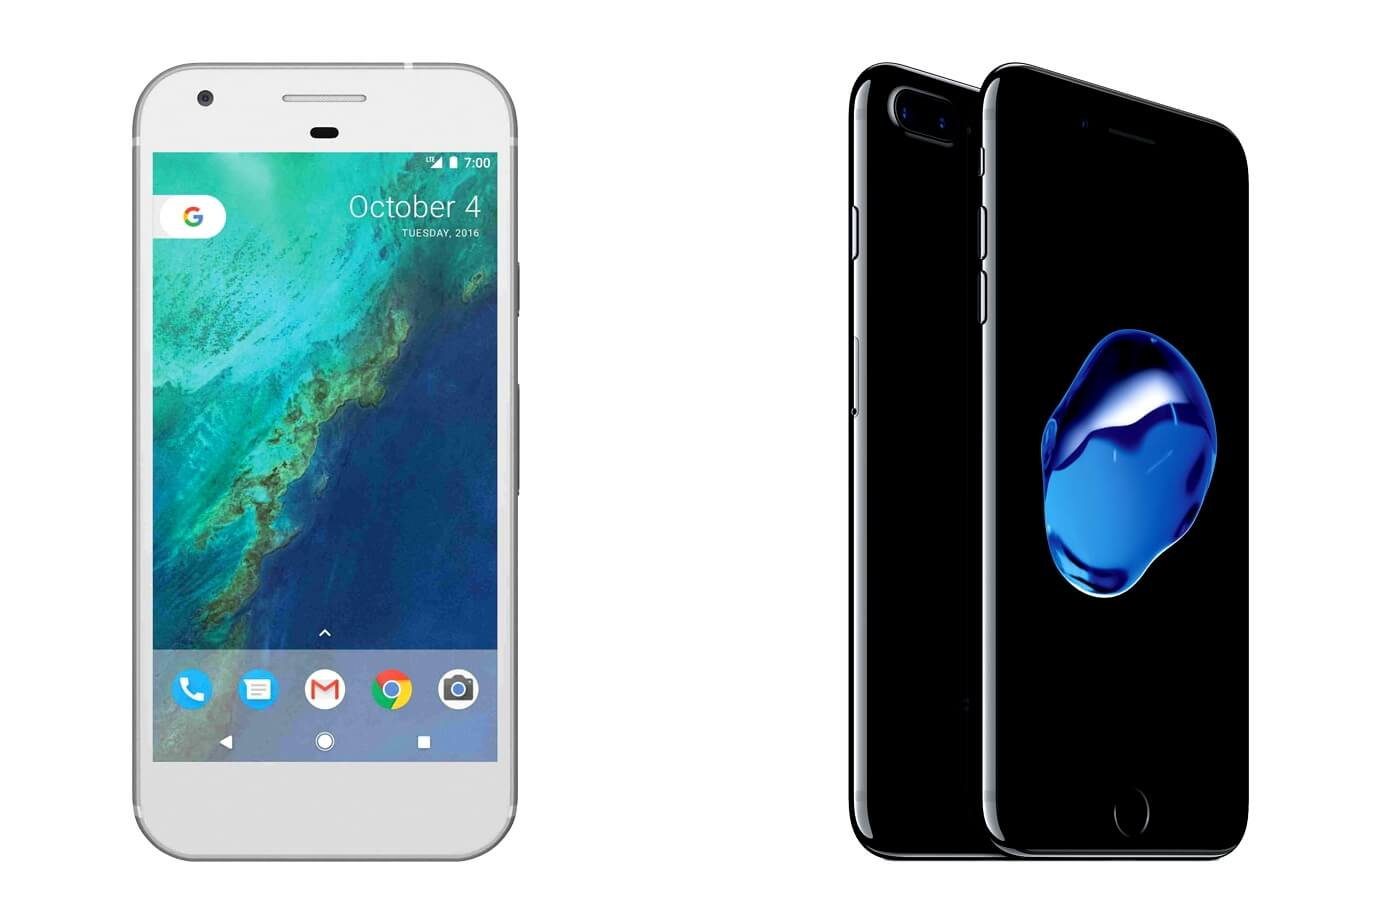 google-pixel-xl-and-apple-iphone-7-plus